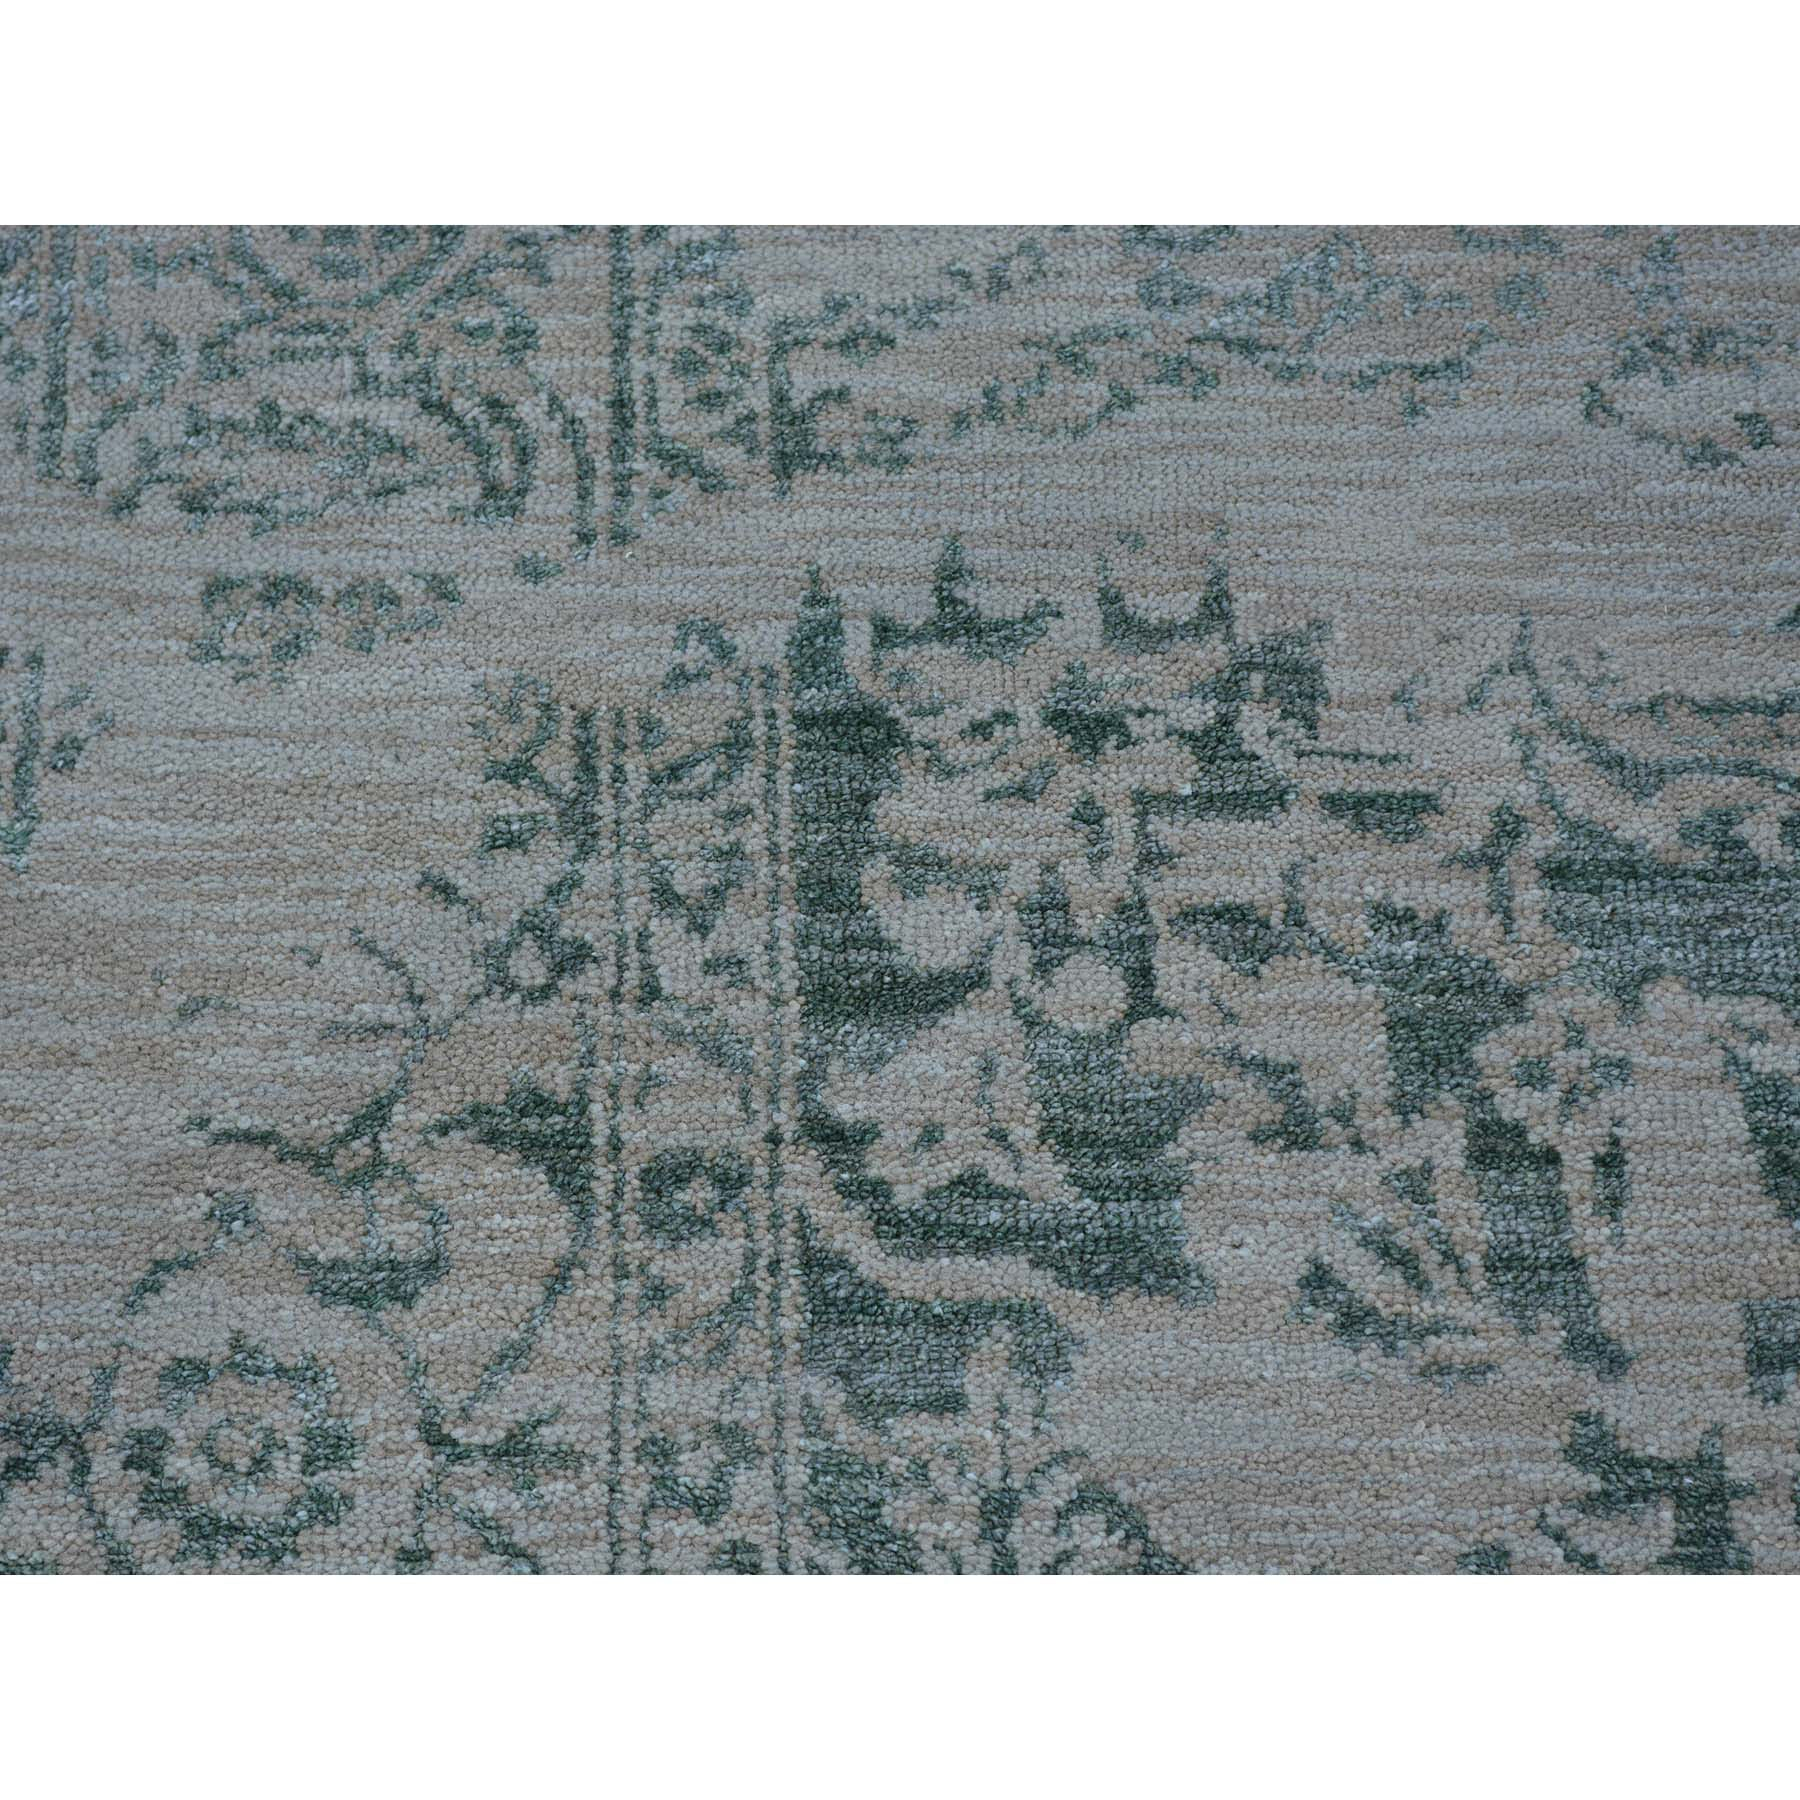 "Handmade Transitional Rectangle Rug > Design# SH23172 > Size: 2'-0"" x 3'-0"" [ONLINE ONLY]"